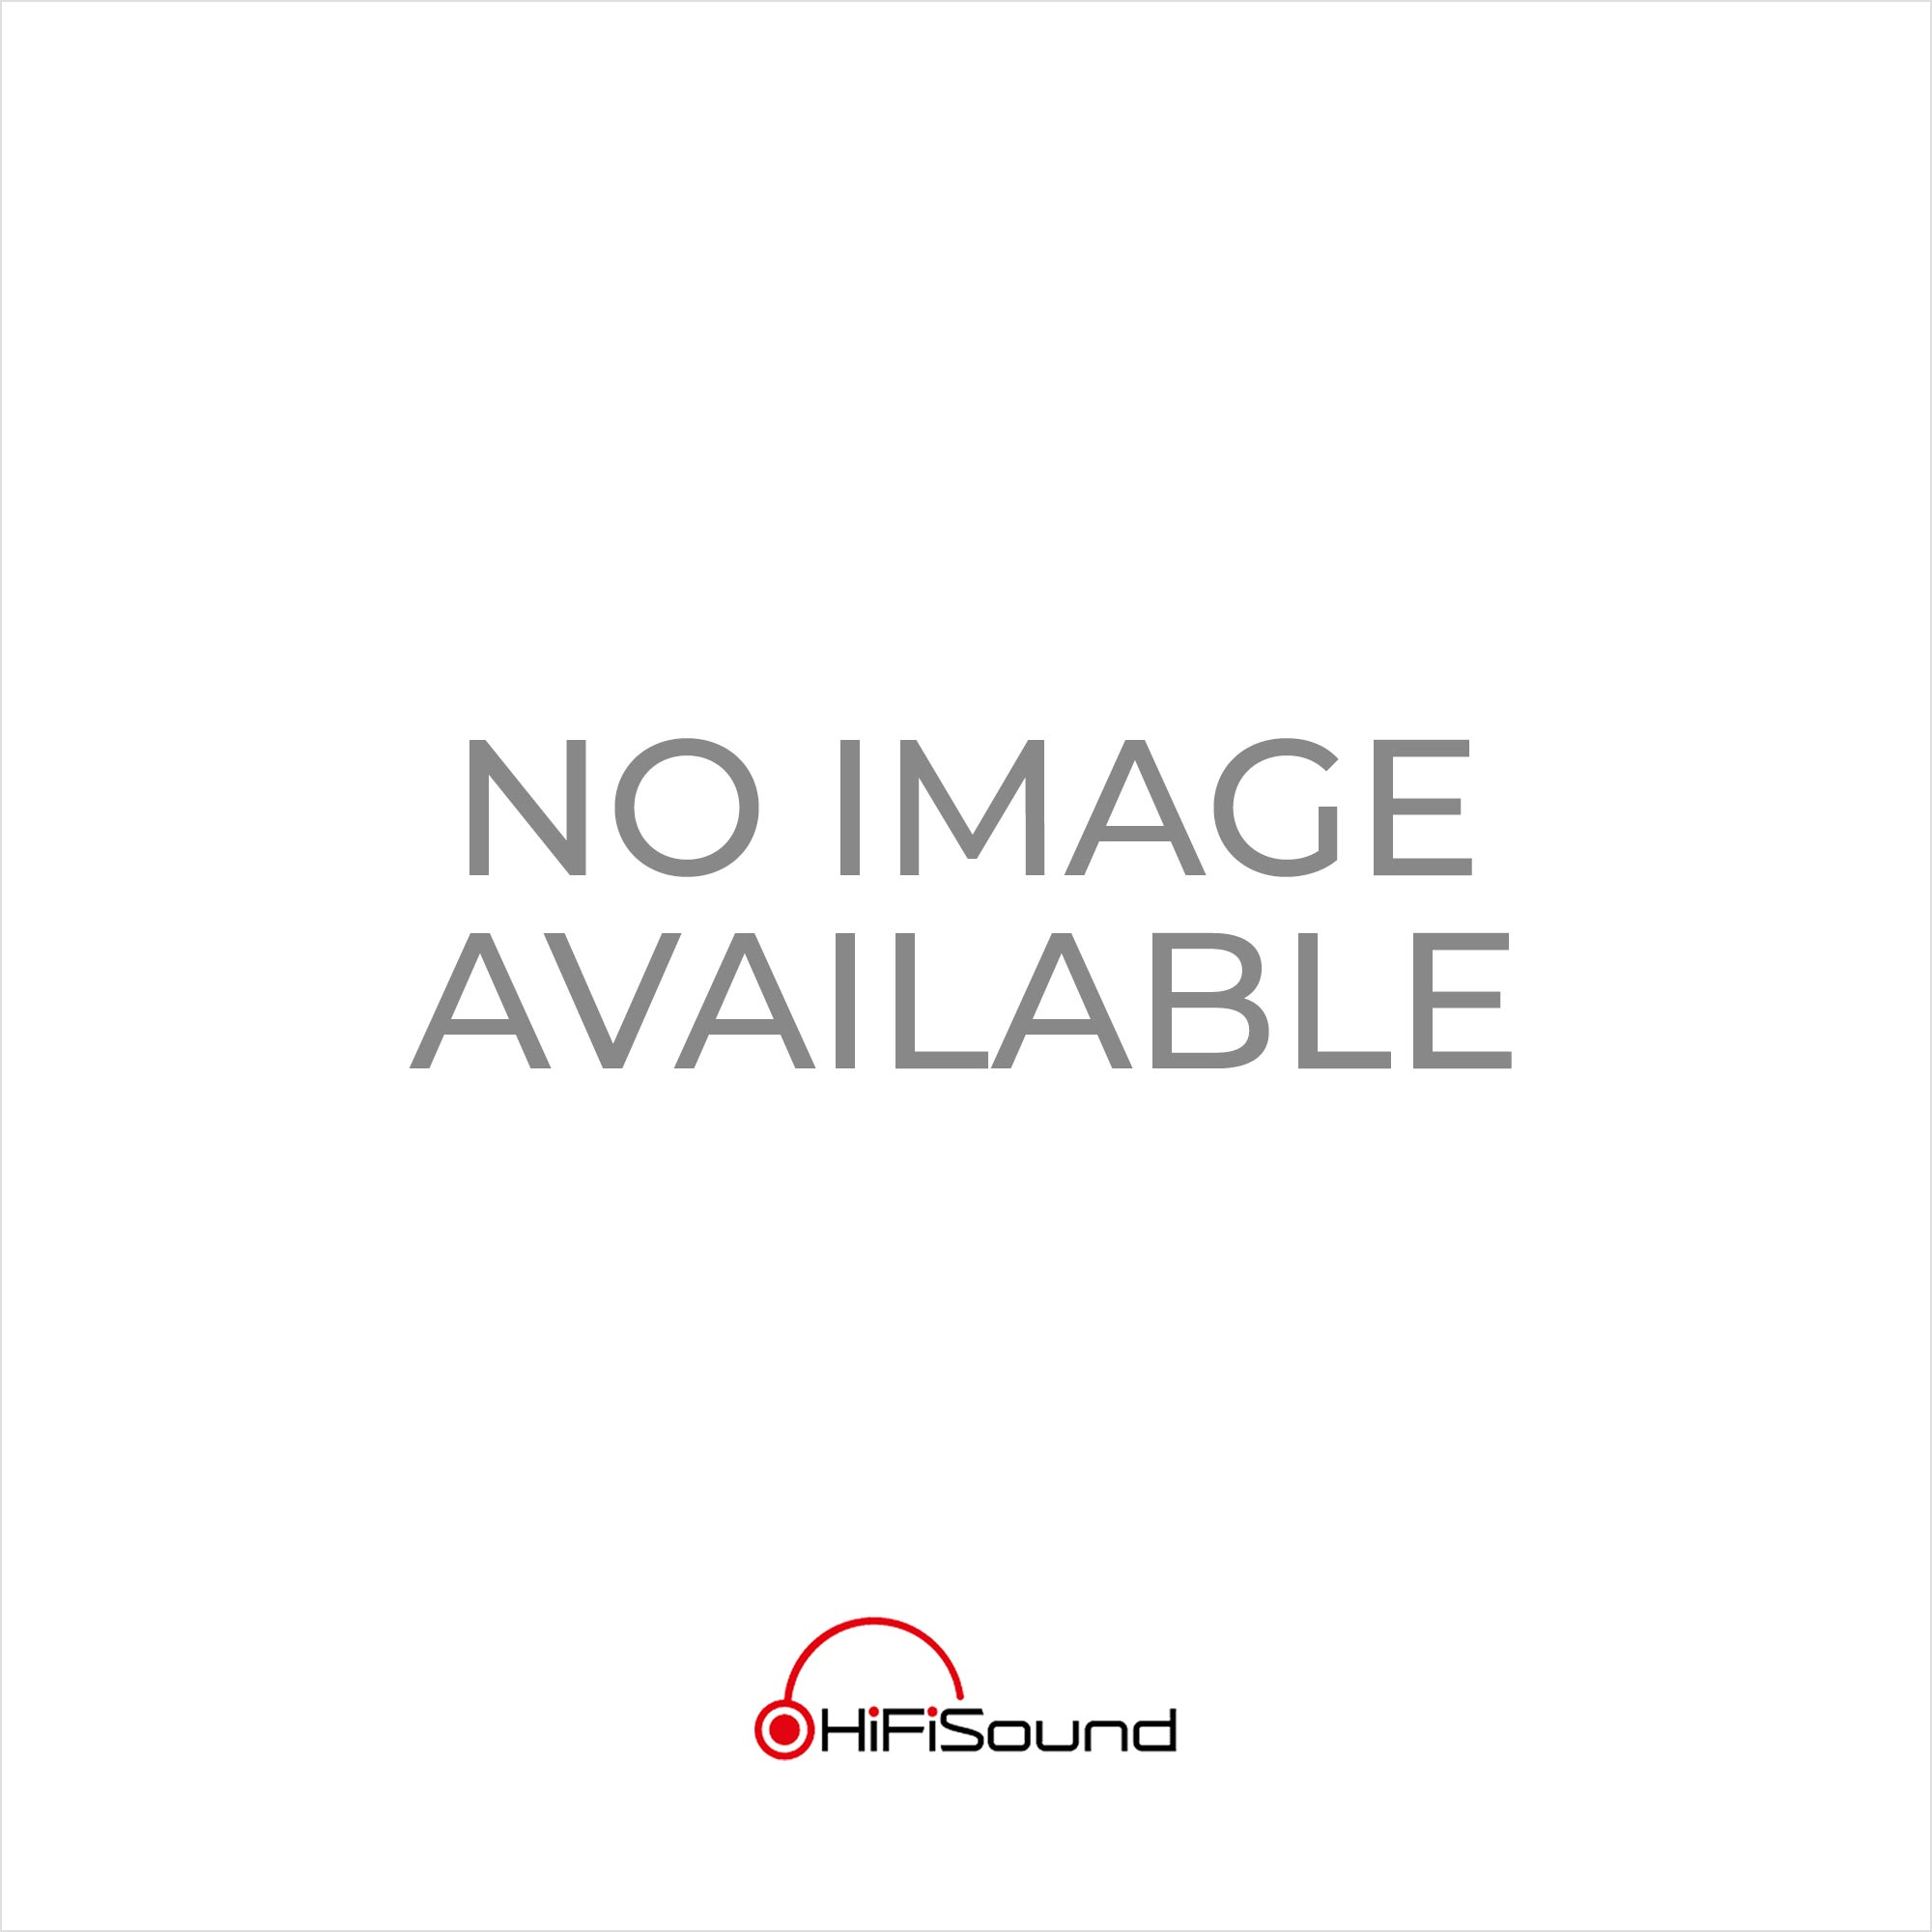 Pathos Acoustics InPolRemix MkII Integrated Amplifier